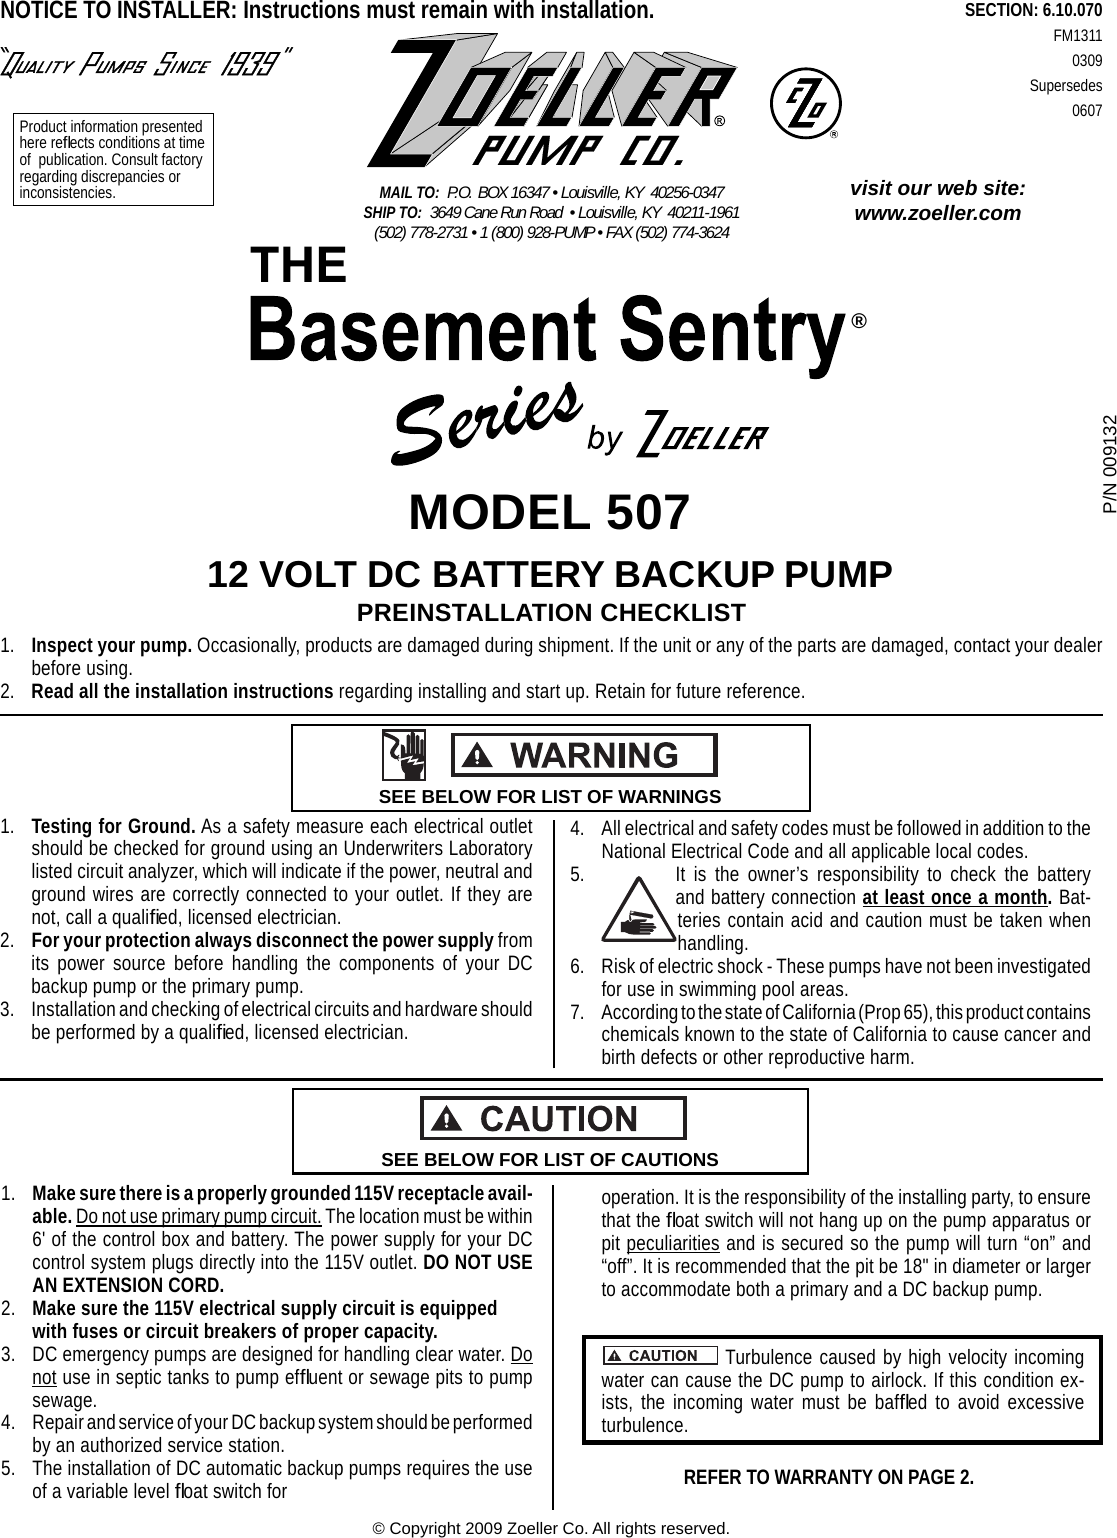 537026 1 Zoeller 507 Basement Sentry System Installation Manual Submersible Pump Wiring Diagram Page Of 8 Fm1311